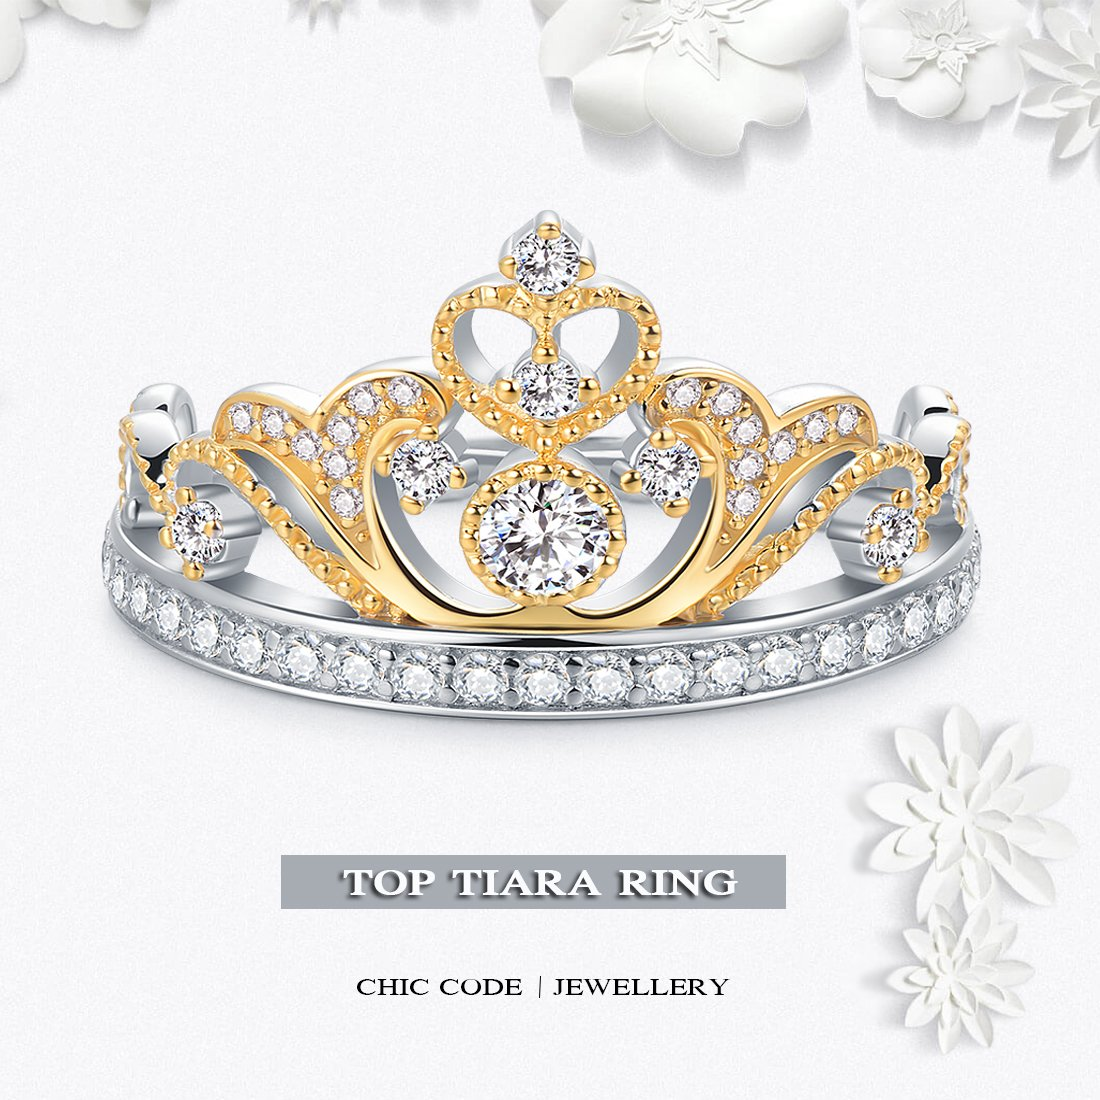 Chic Code Yellow & White Gold Plated 925 Sterling Silver Princess Crown Ring - Top Tiara Ring Gift by Chic Code (Image #2)